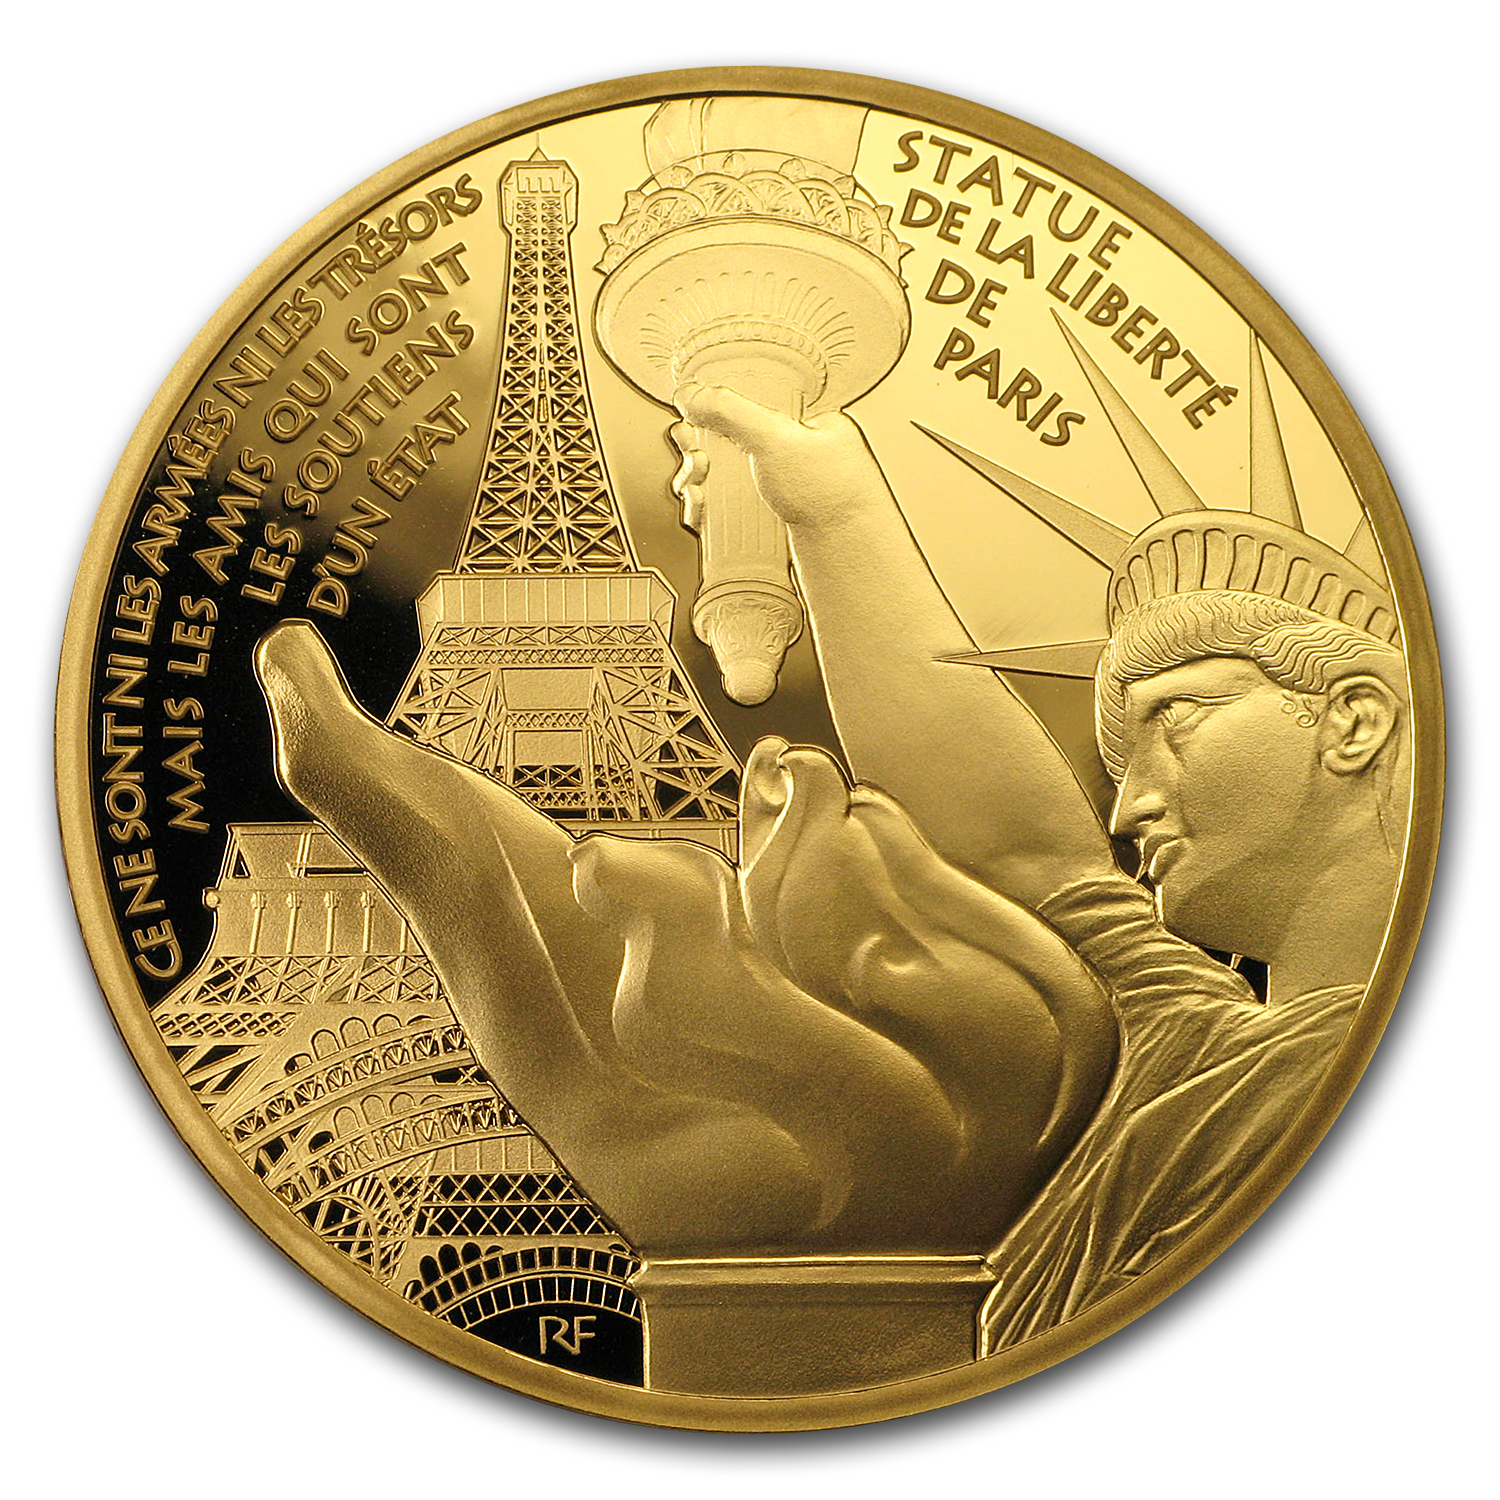 2017 1 oz Prf Gold €200 Treasures of Paris (Statue of Liberty)